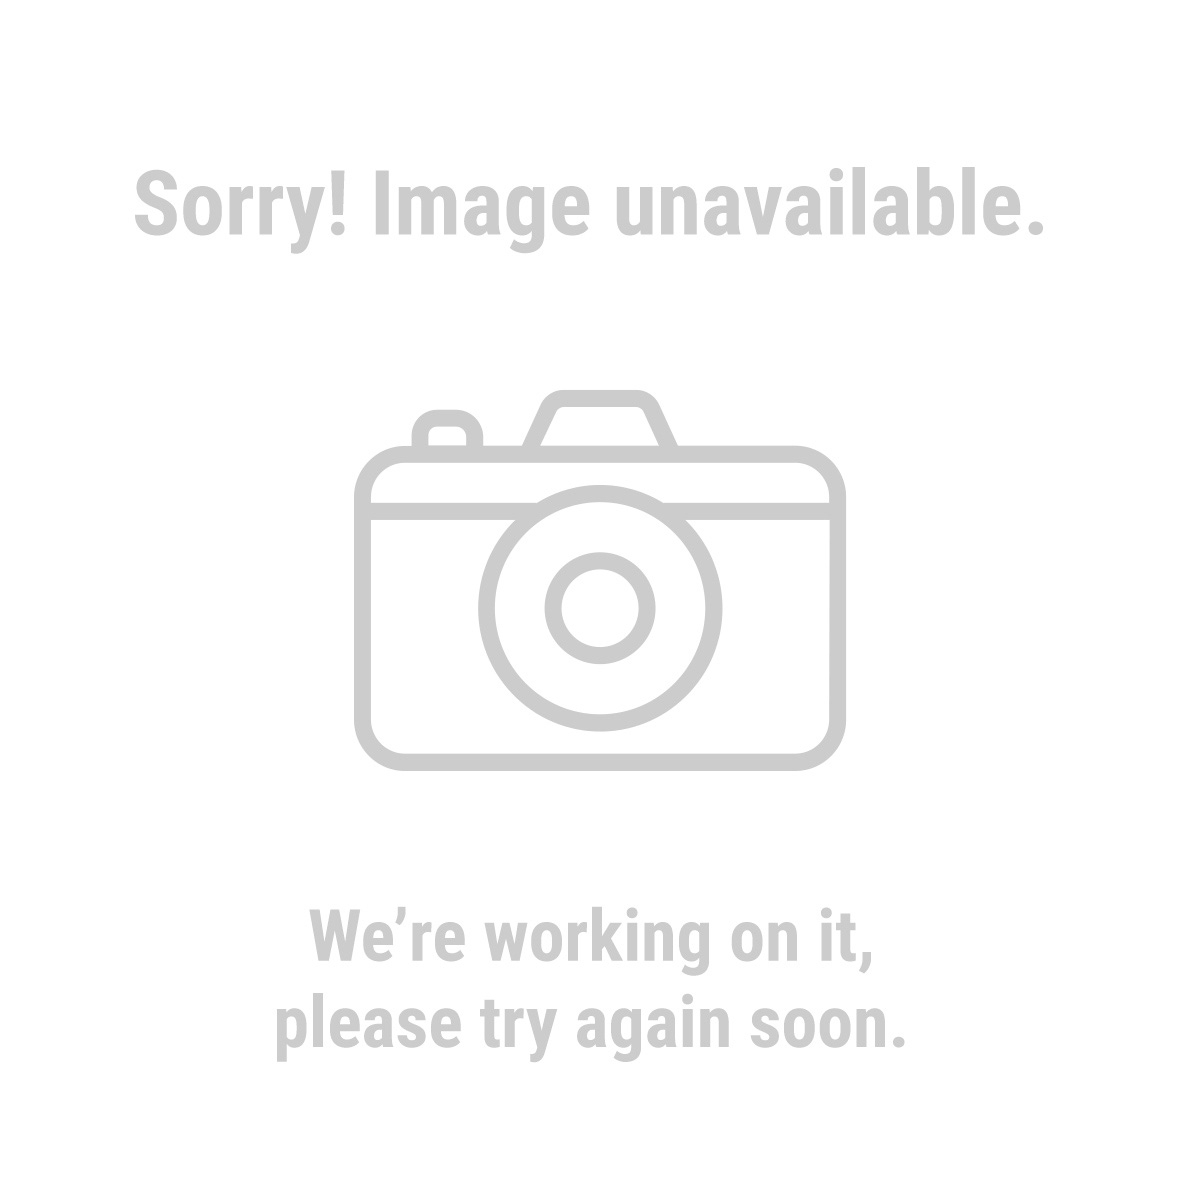 Warrior 68828 58 Piece Quick Change Drill and Driver Bit Set